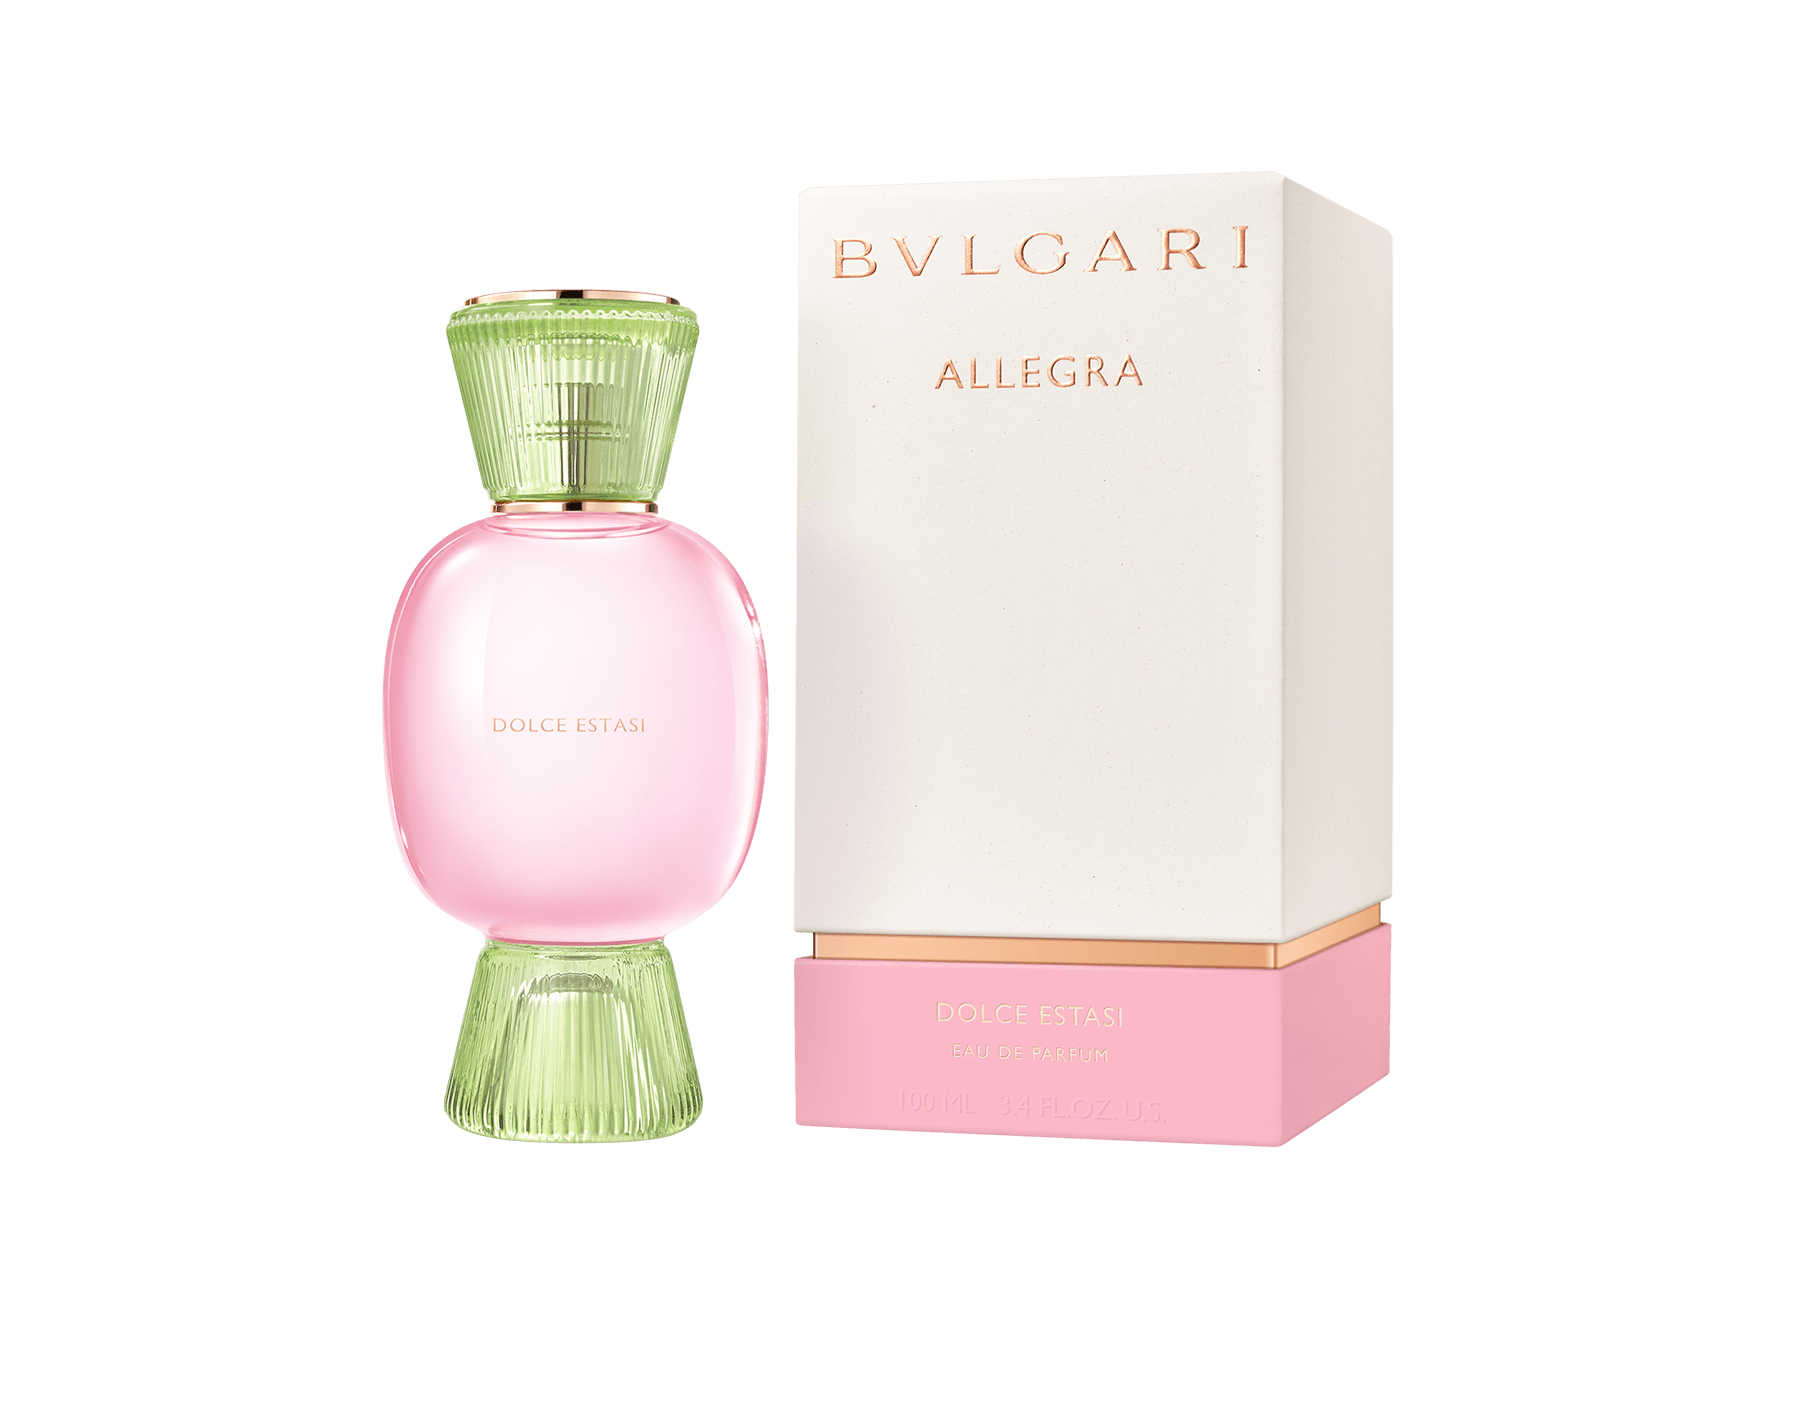 """It is the celebration of sweetness, of the Italian family cocoon."" Jacques Cavallier A soothing powdery floral that transports you to an Italian pasticcerria, recalling youthful memories of enjoying delectable Italian pastries. 41240 image 2"